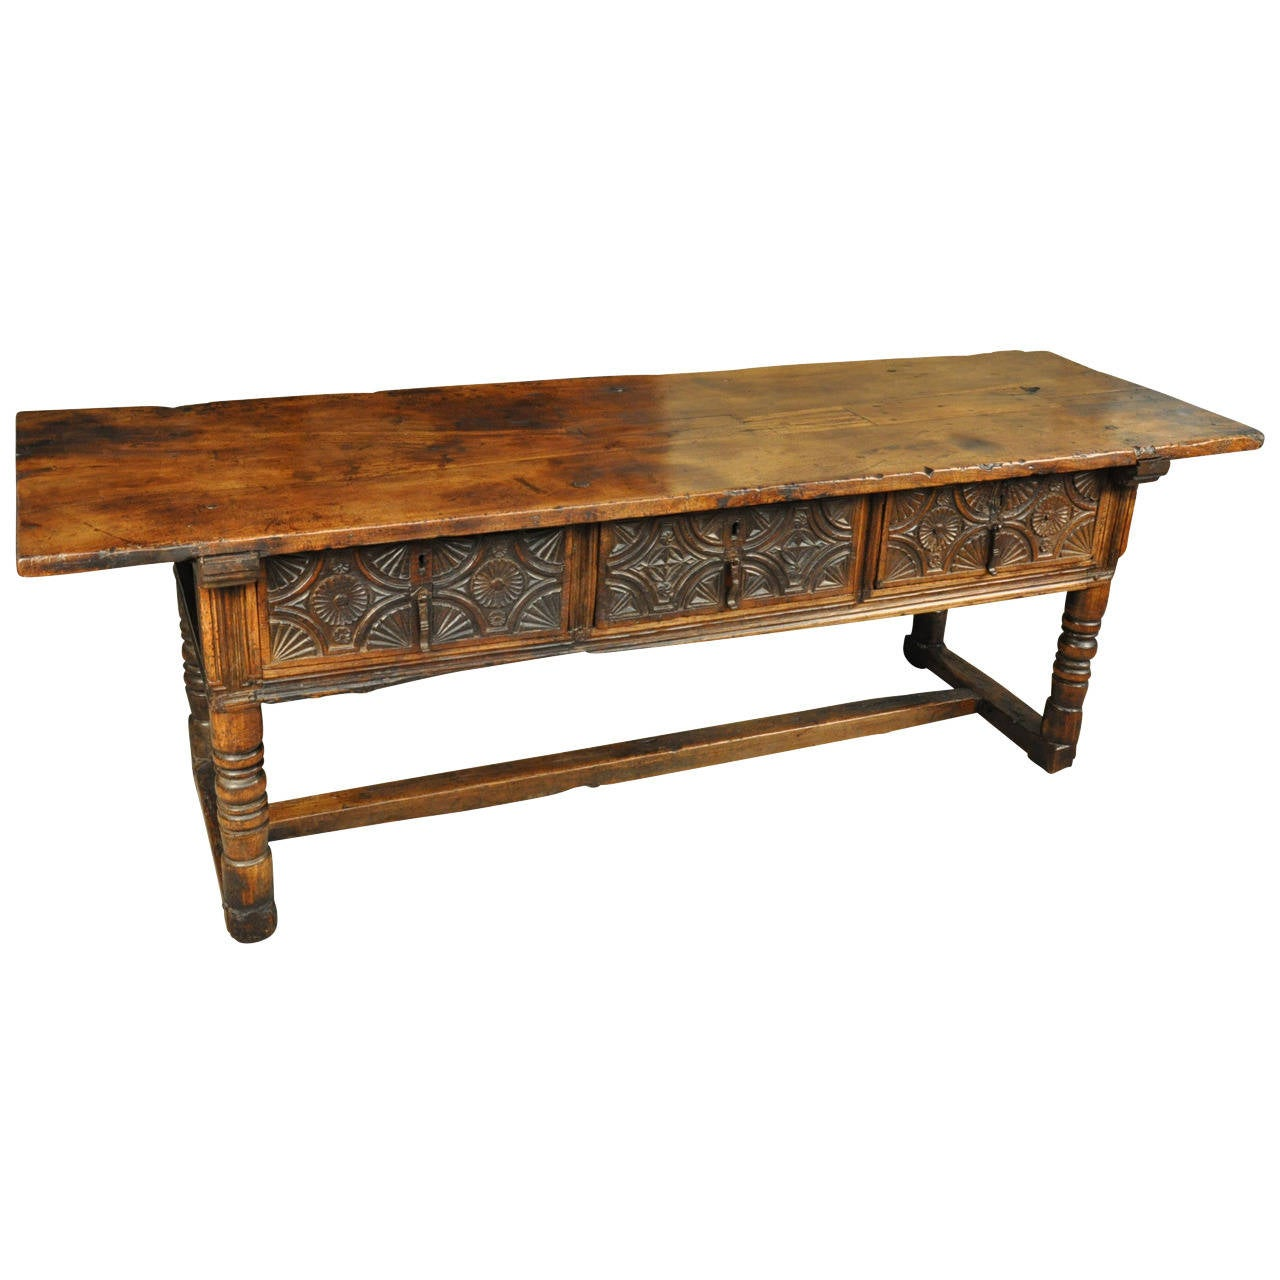 Spanish 17th century console table in chestnut at 1stdibs for Table in spanish